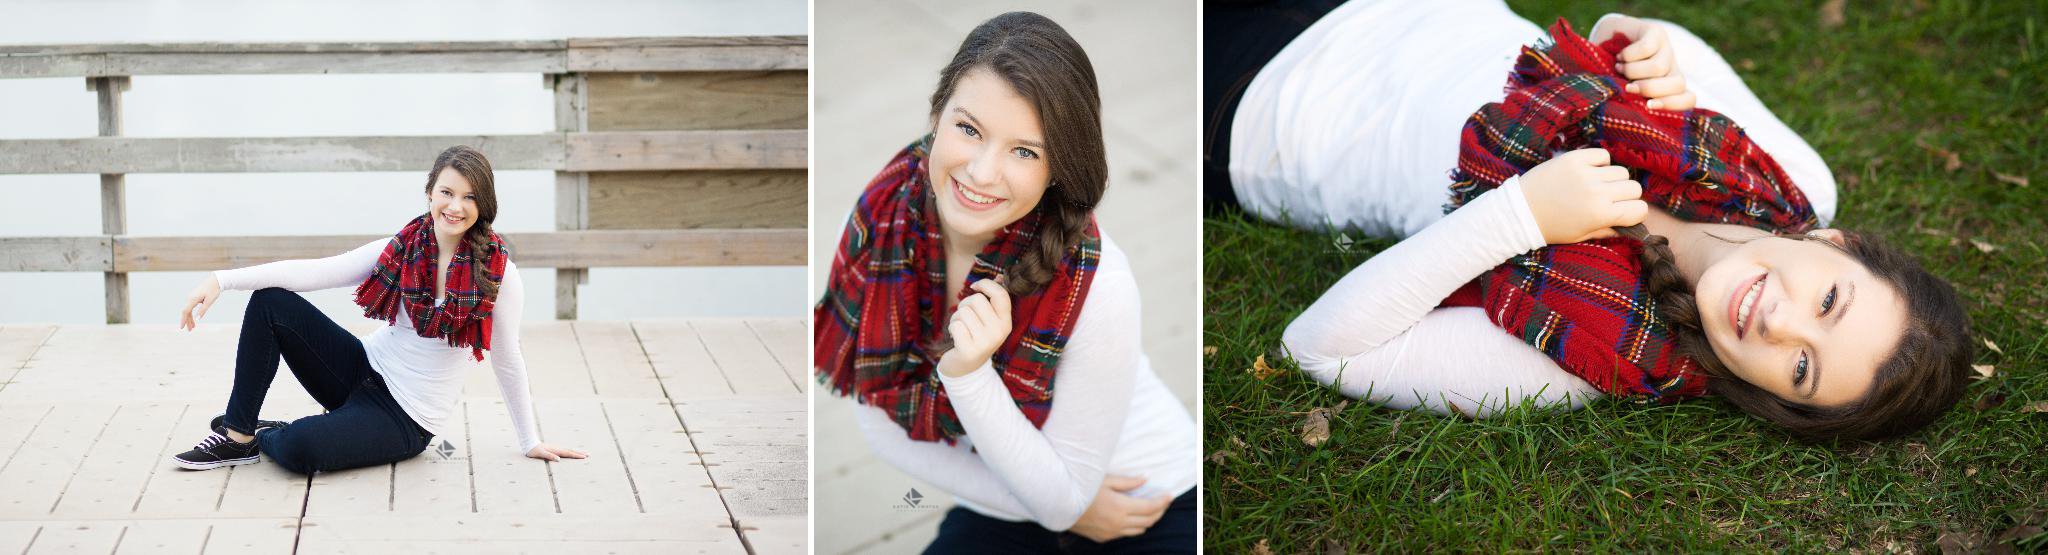 Flannel Scarf Senior Images by Katie Swatek Photography